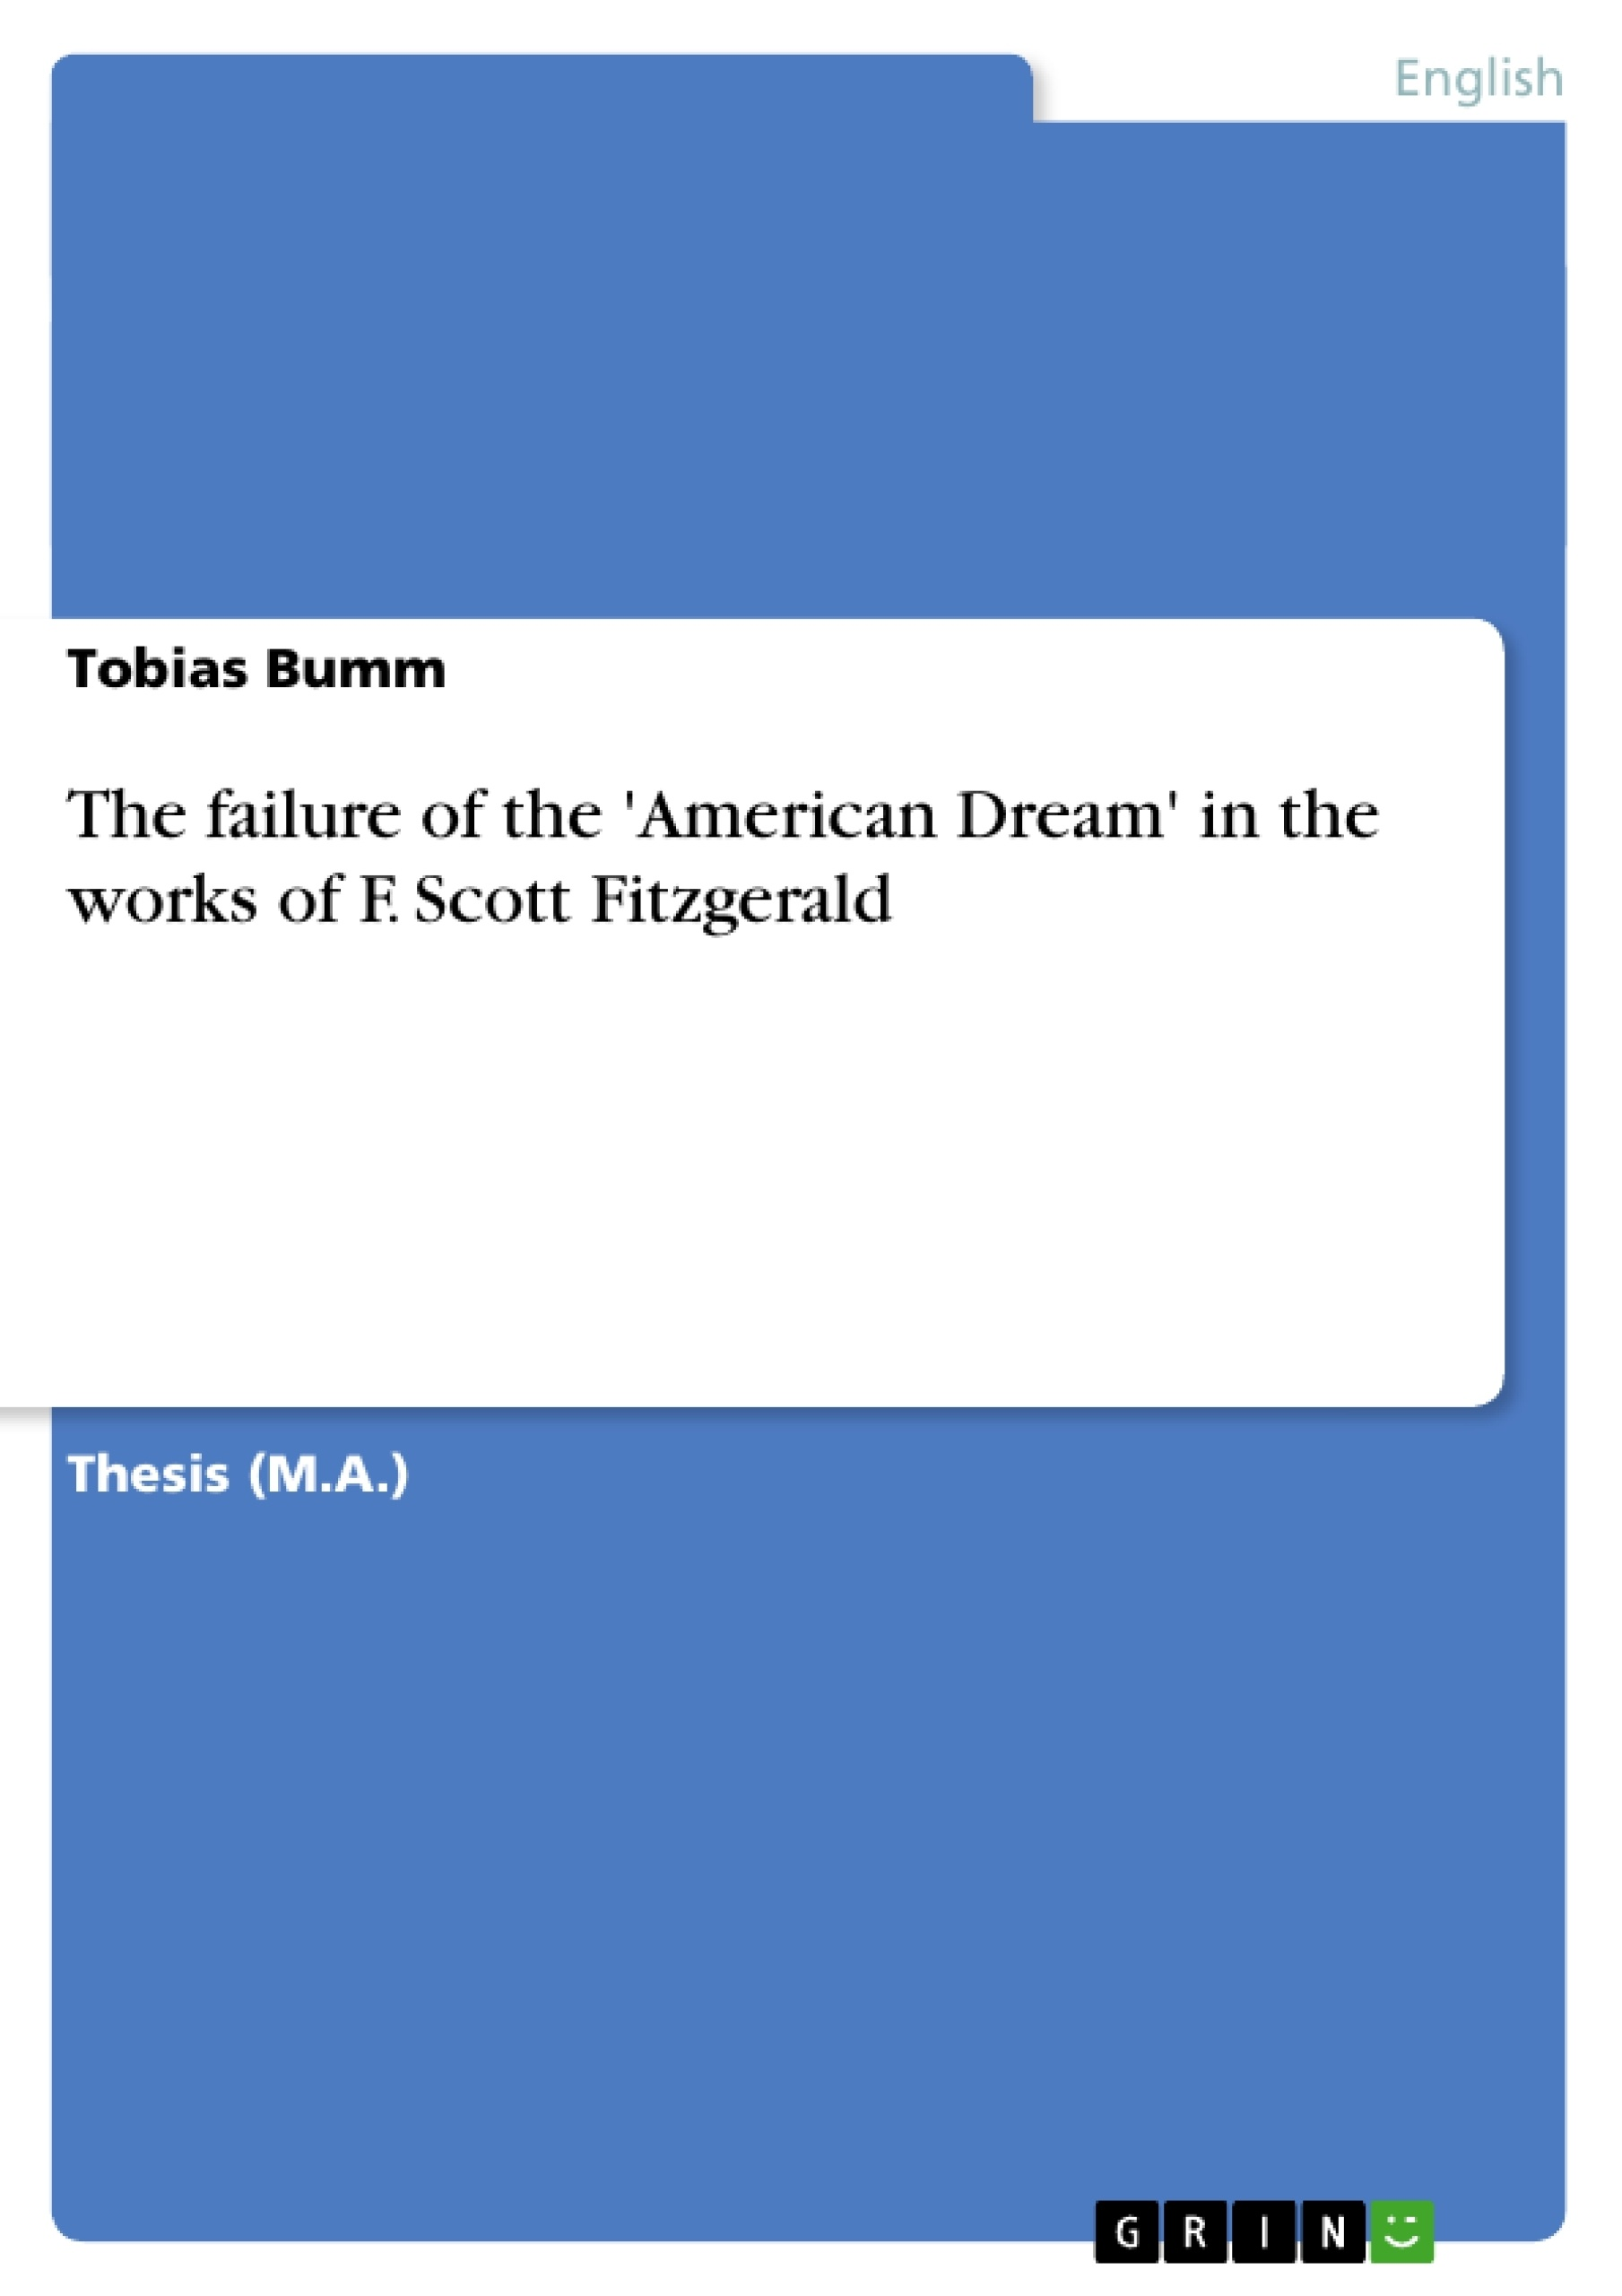 Title: The failure of the 'American Dream' in the works of F. Scott Fitzgerald